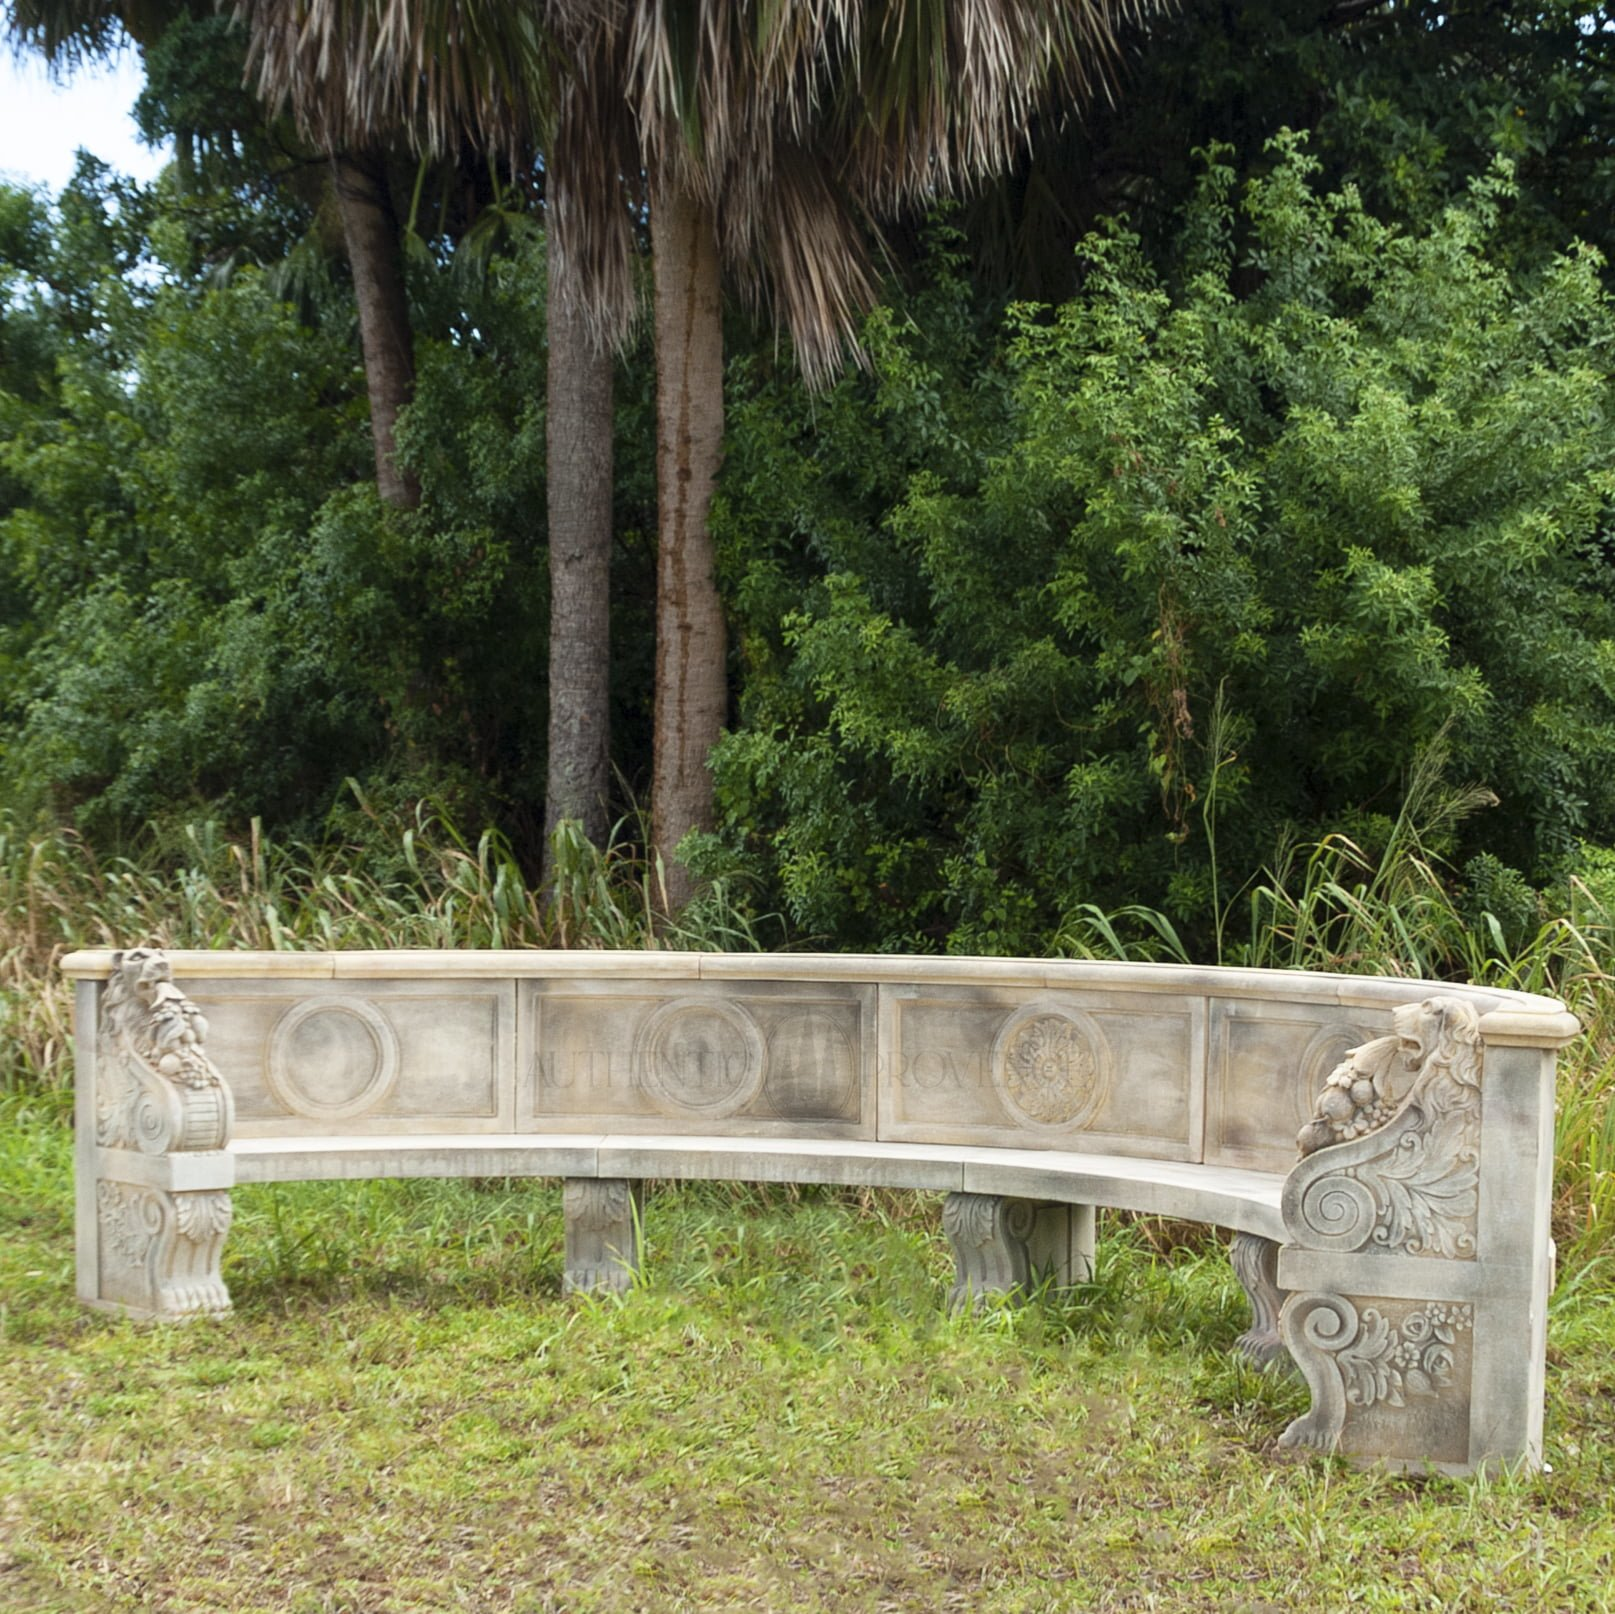 A very large half moon shape bench. Backrest consists of panels decorated with central circles